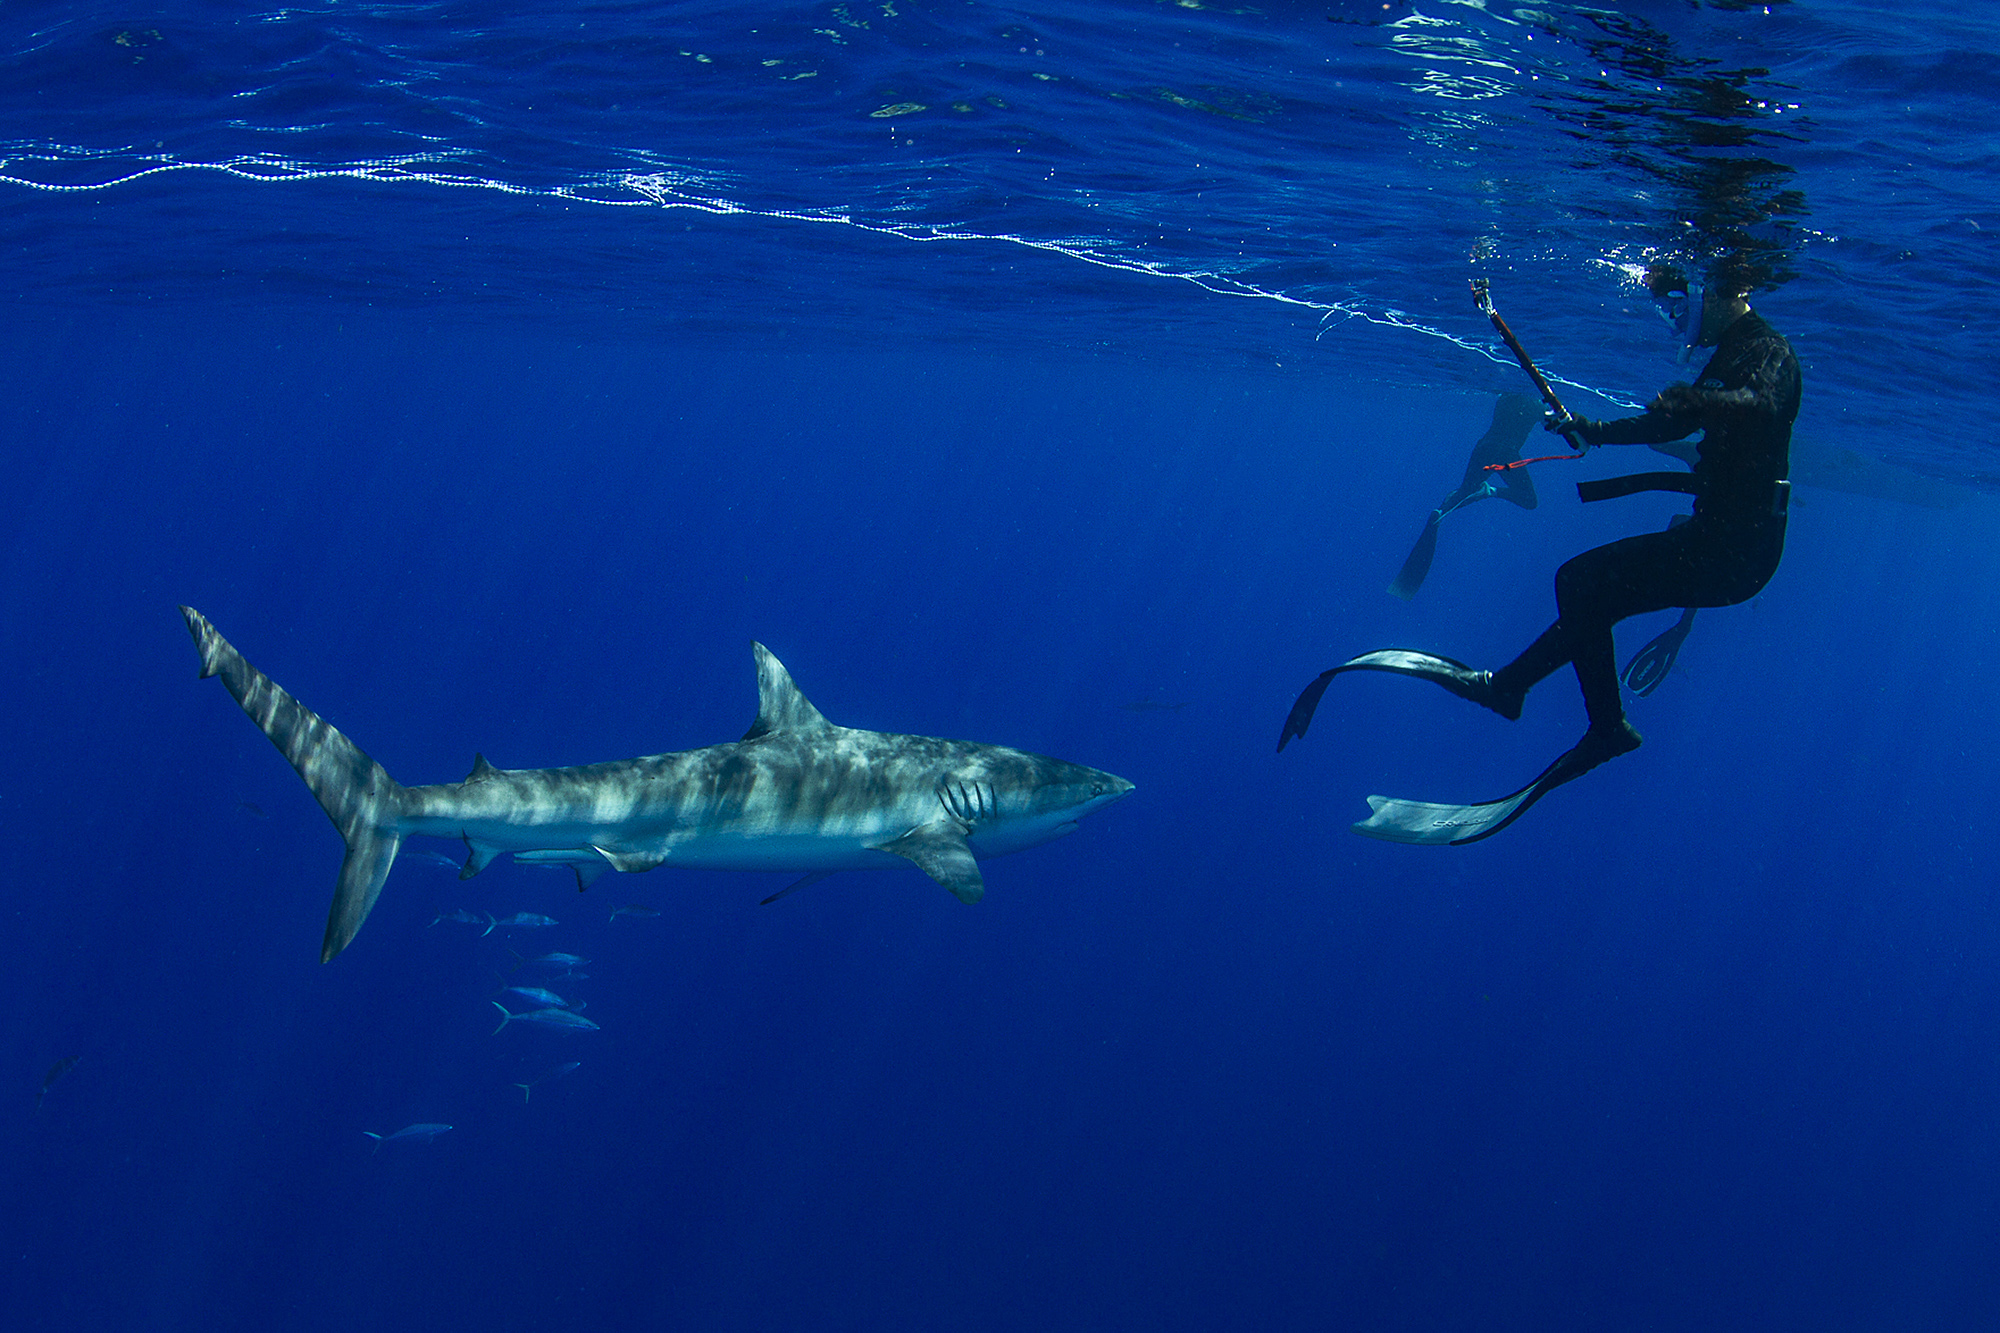 The dusky shark wasn't timid, making close passes to all divers in the water